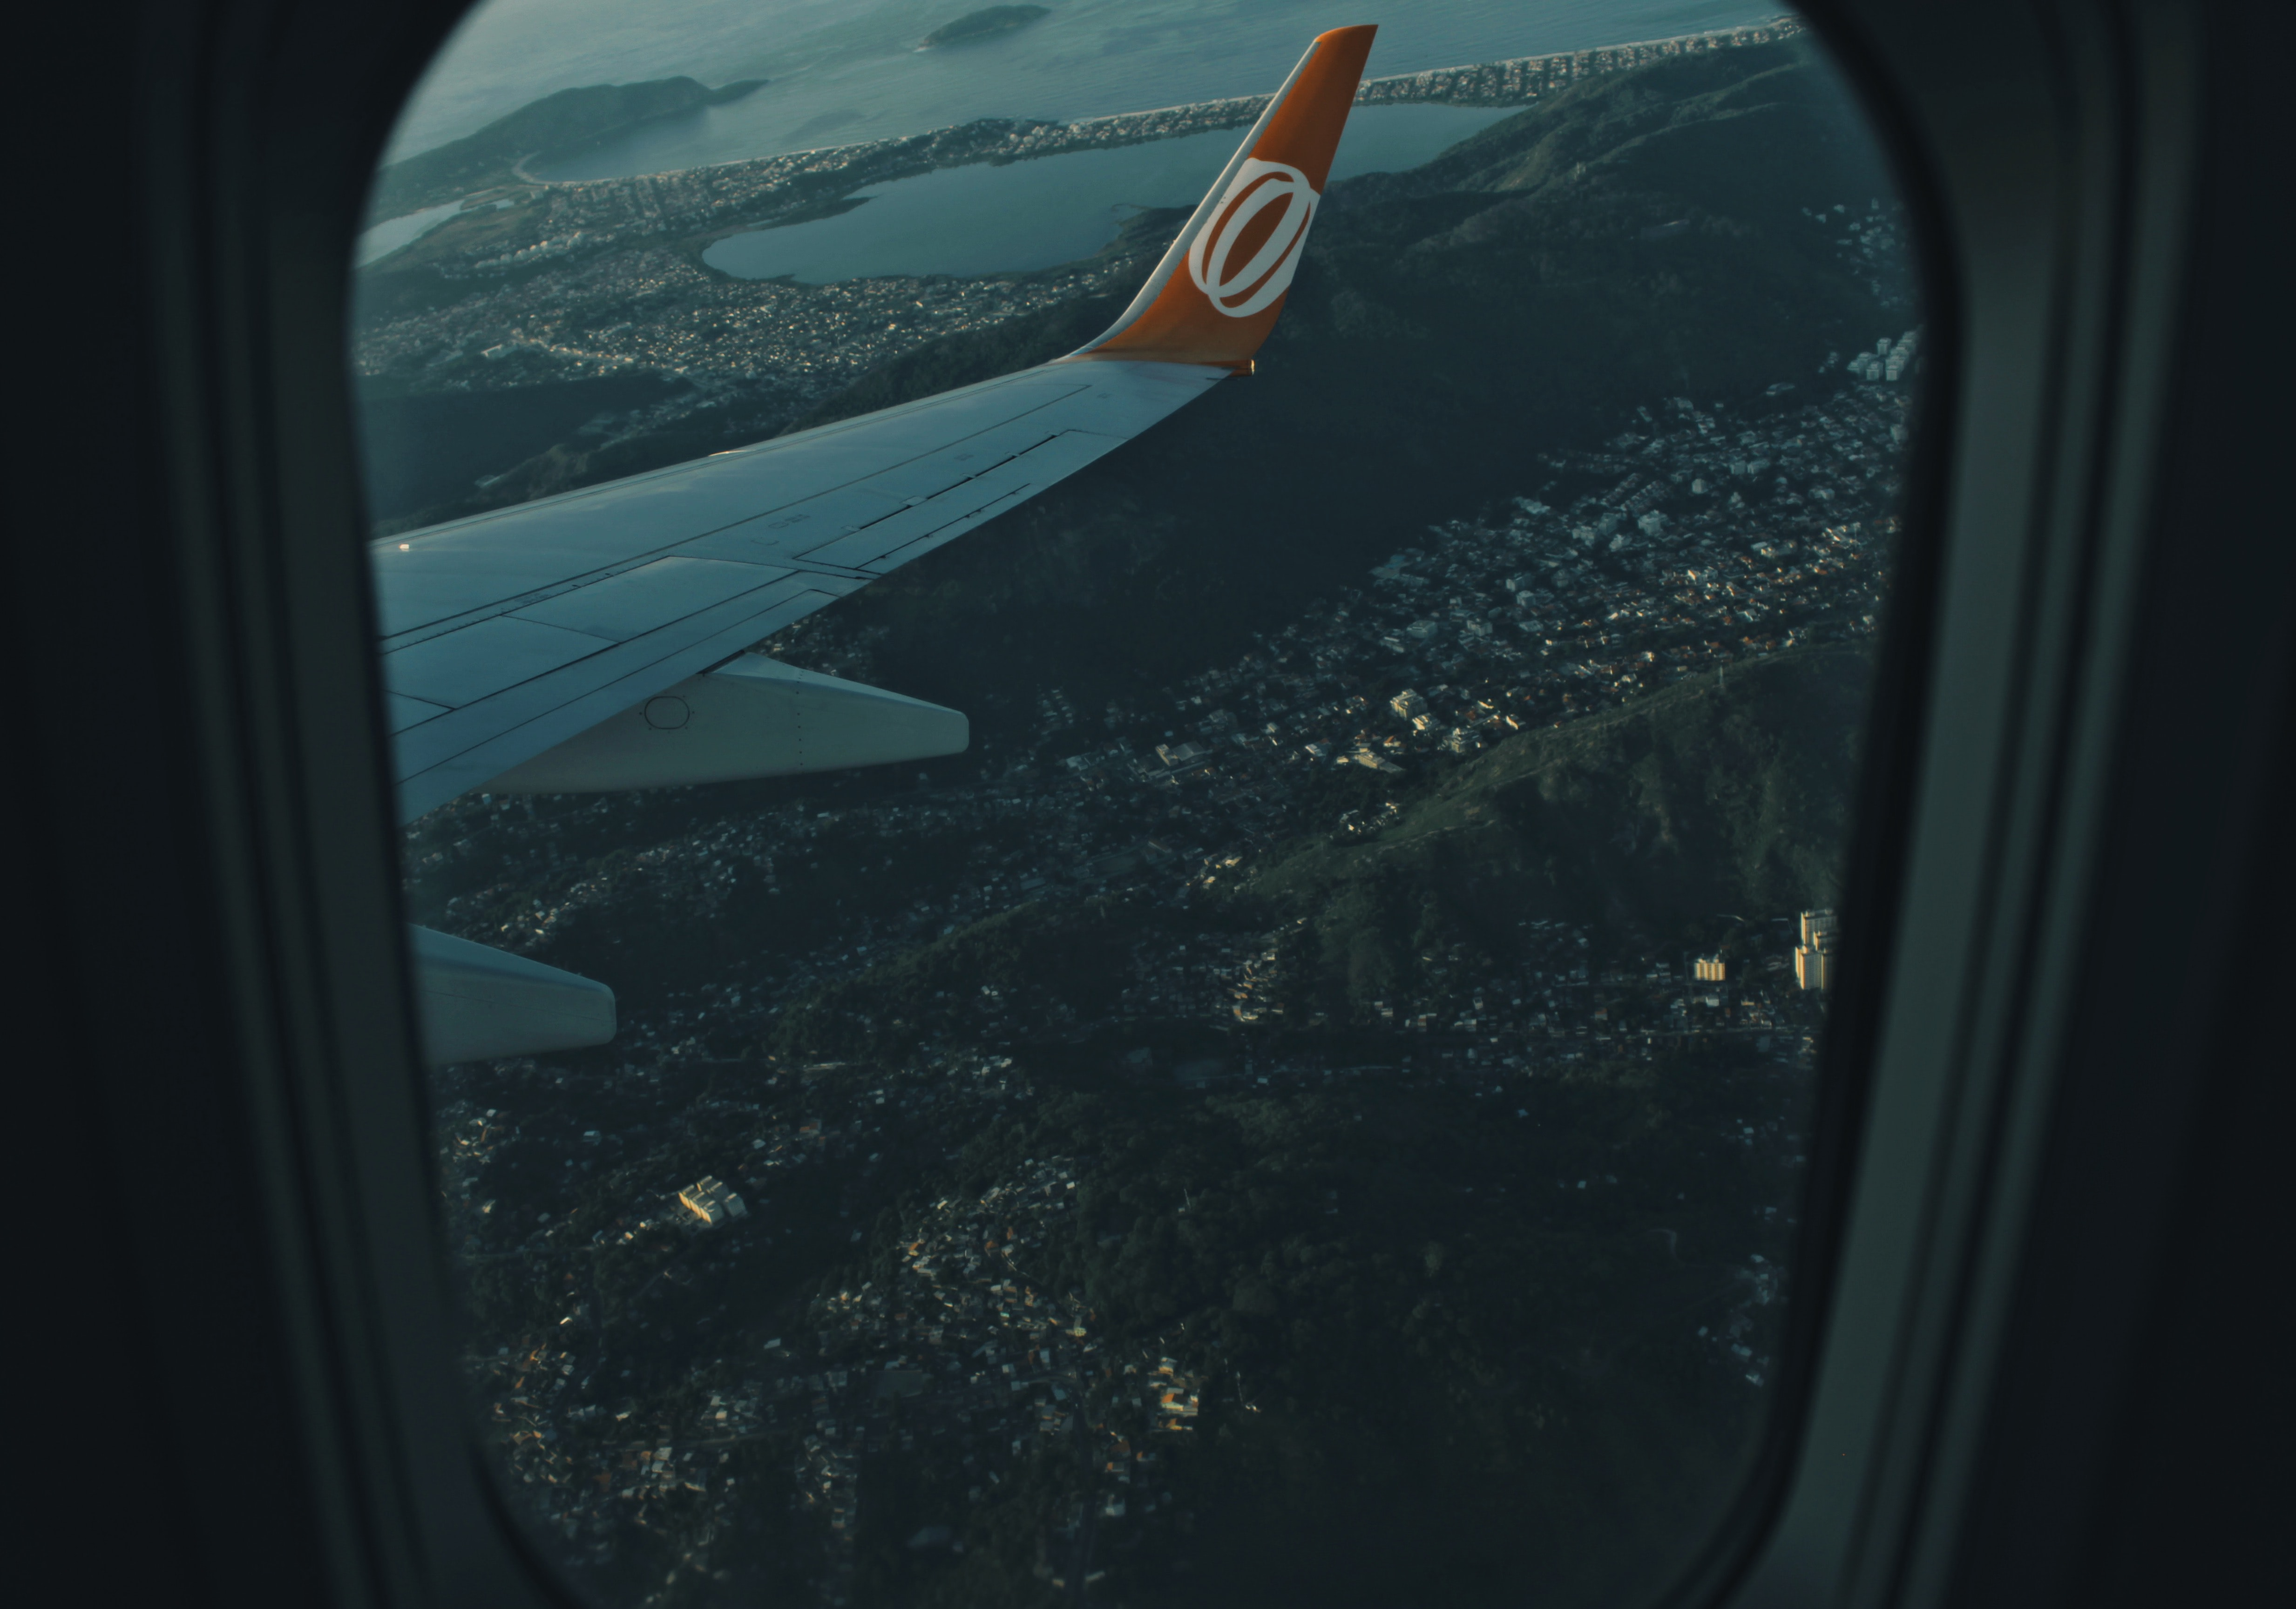 View from a plane window on the suburbs of Rio de Janeiro below